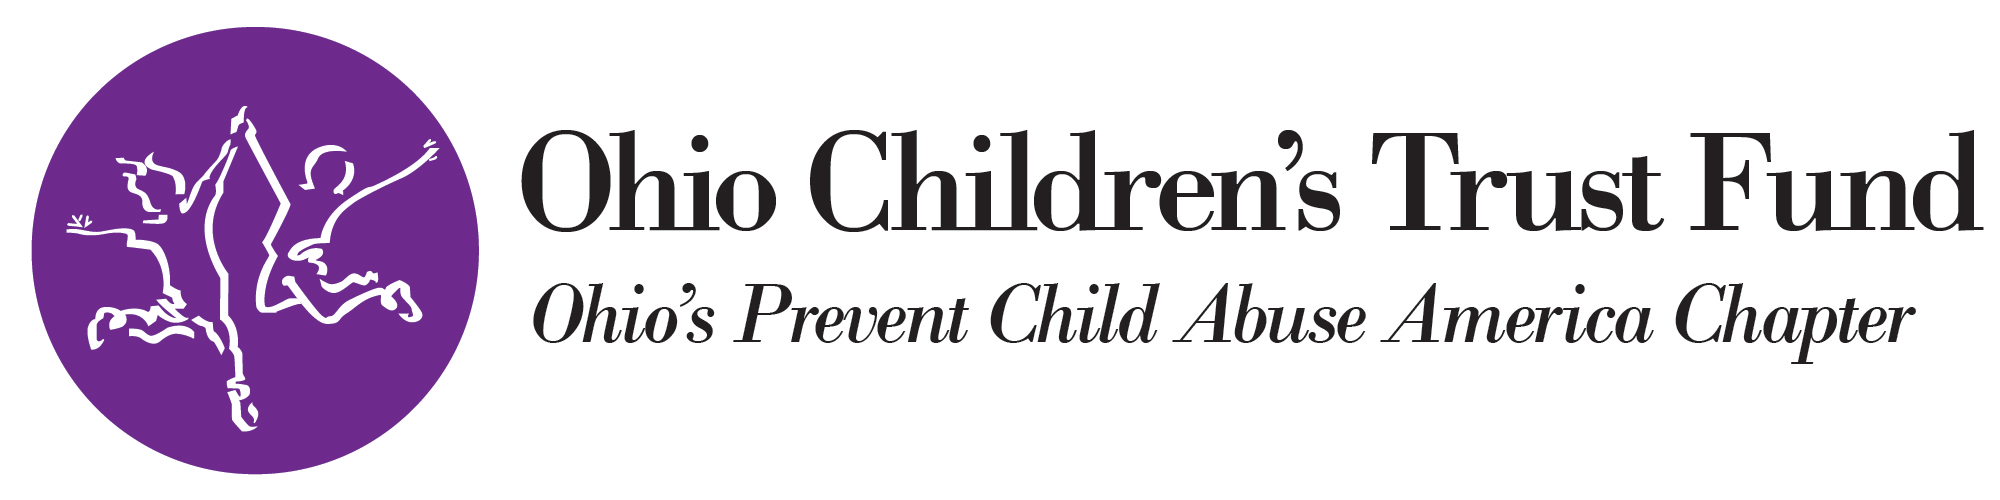 Ohio Children's Trust Fund